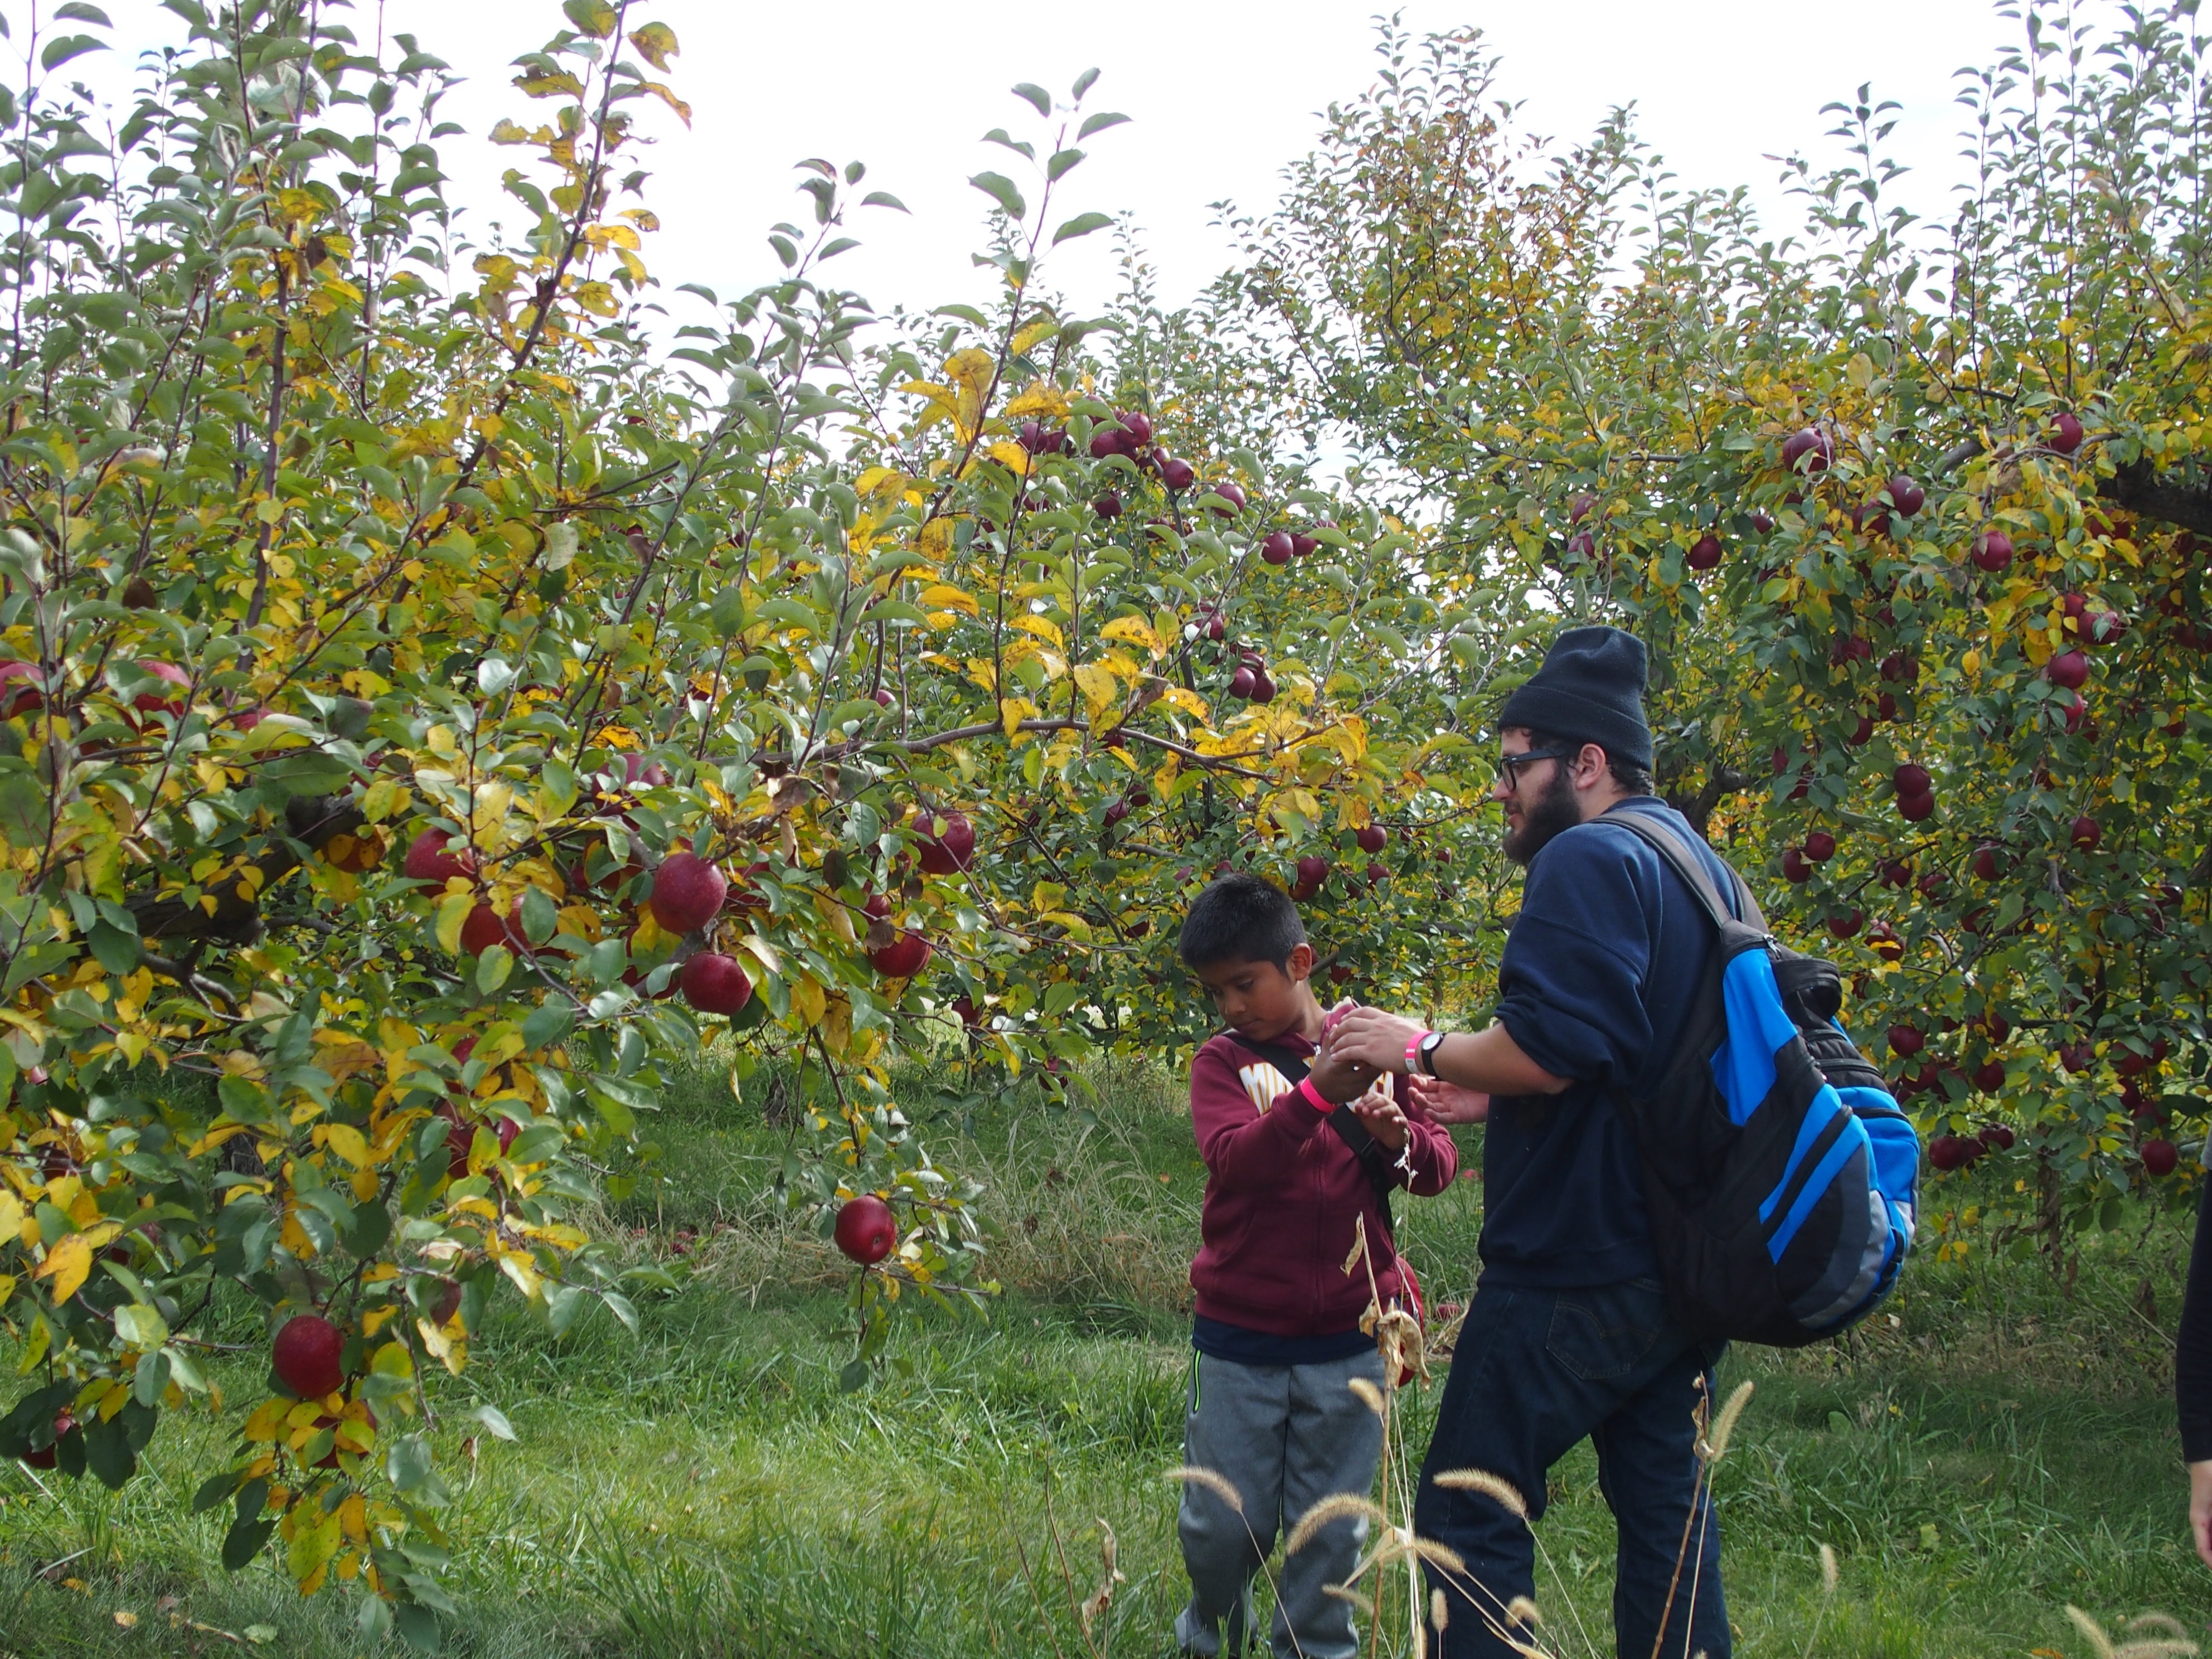 Finding the Best Apples!